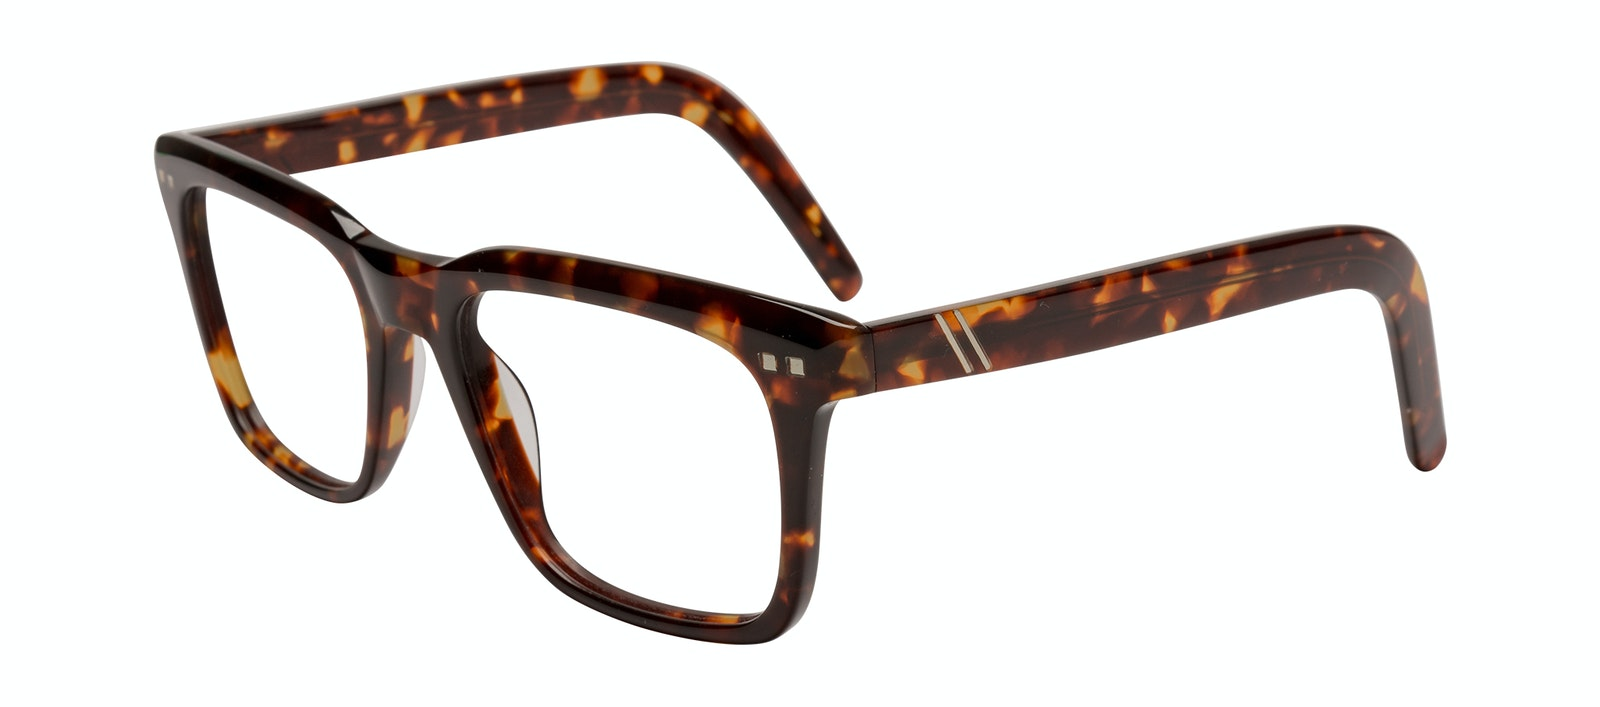 Affordable Fashion Glasses Square Eyeglasses Men Well Tortoise Tilt